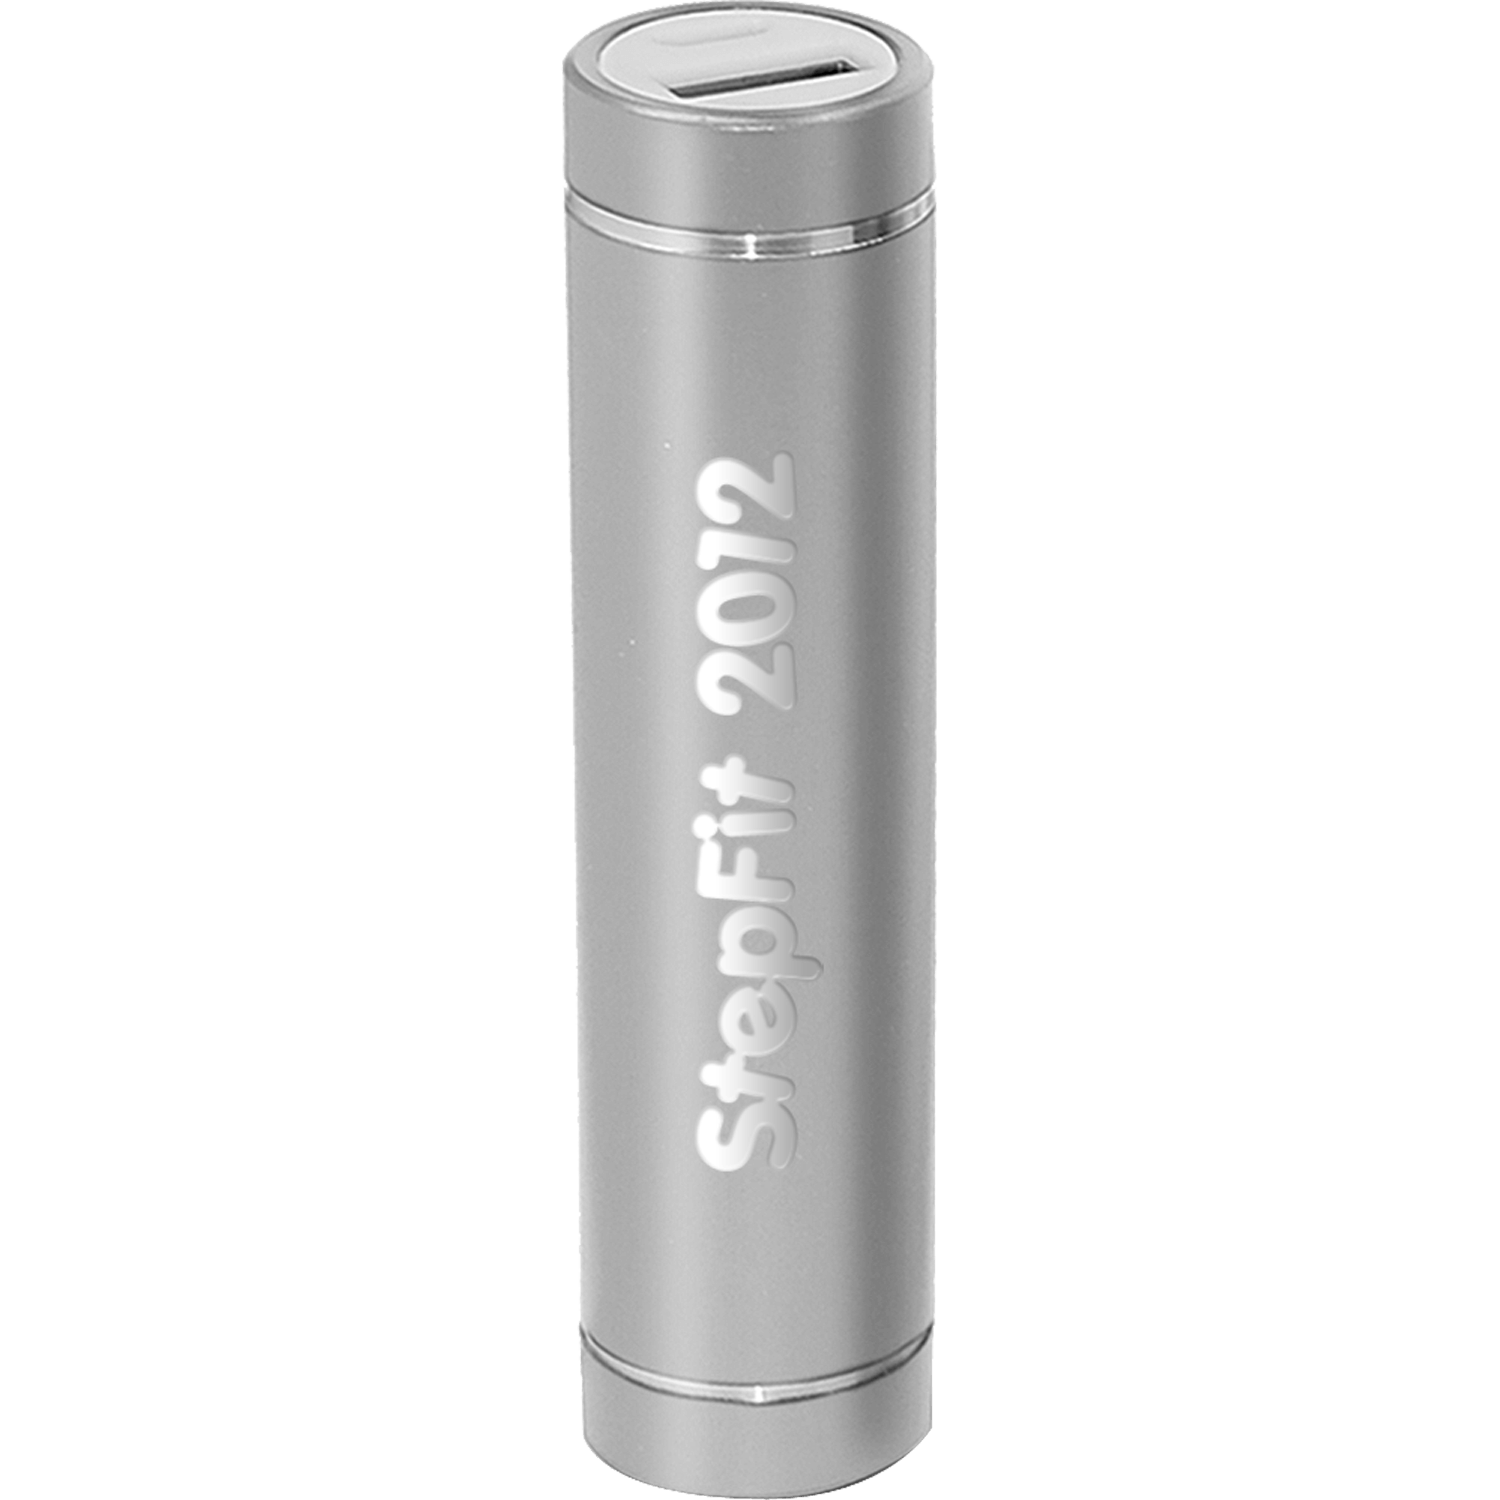 Engraved Power Bank 2200mAh